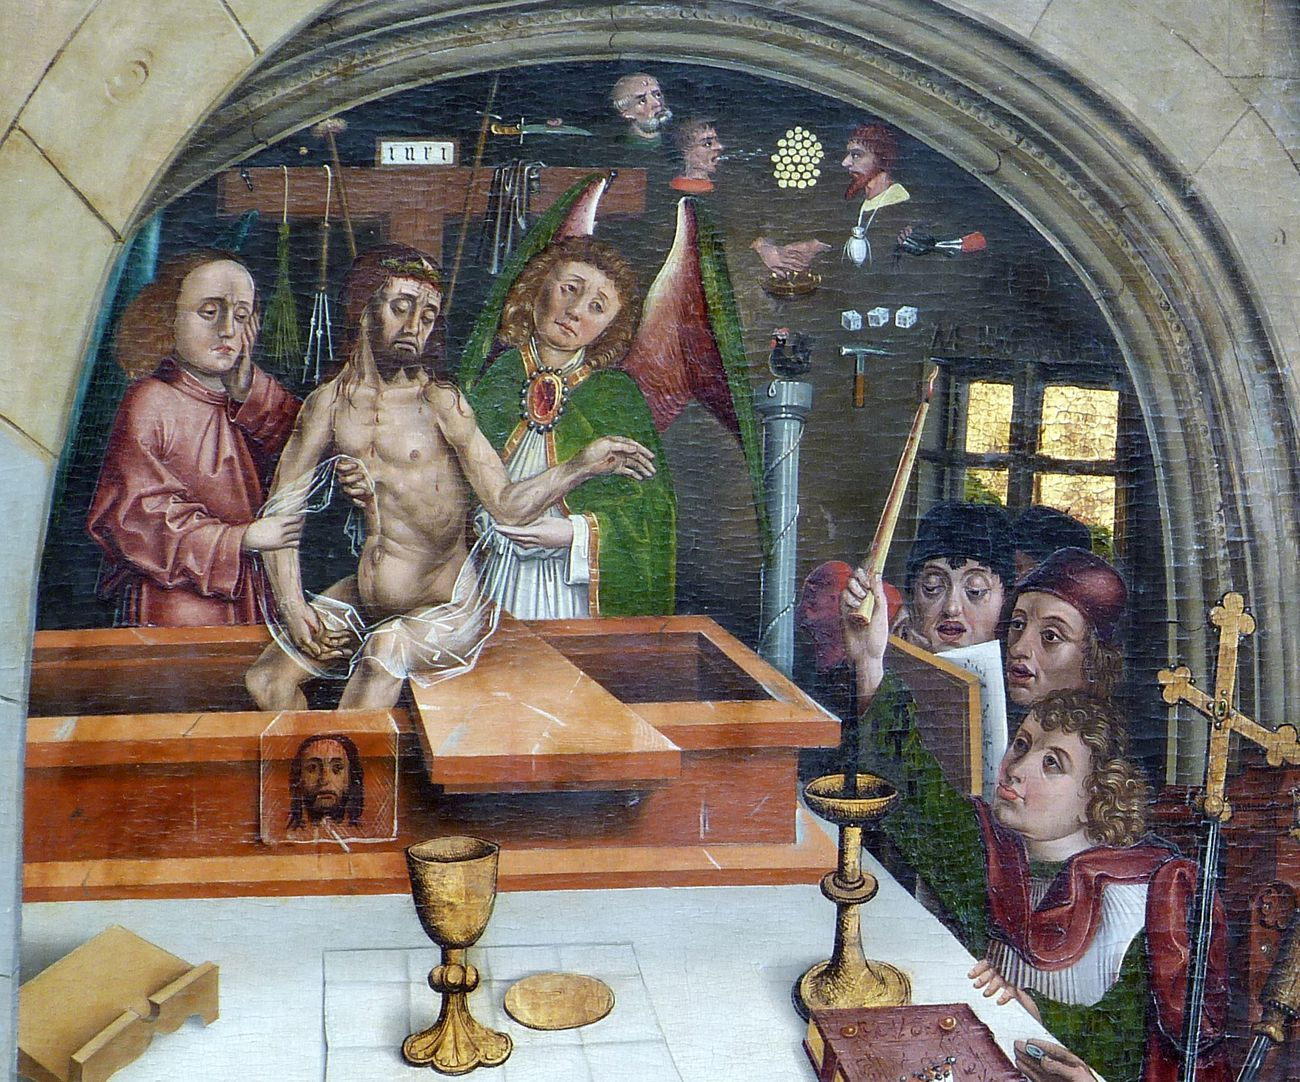 Epitaph of Hans Mayer (gest. 21.8.1473) and his spouese Kunigunde, neé Sternecker (died. 23. March 1450) Christ appears from his grave, held by angels